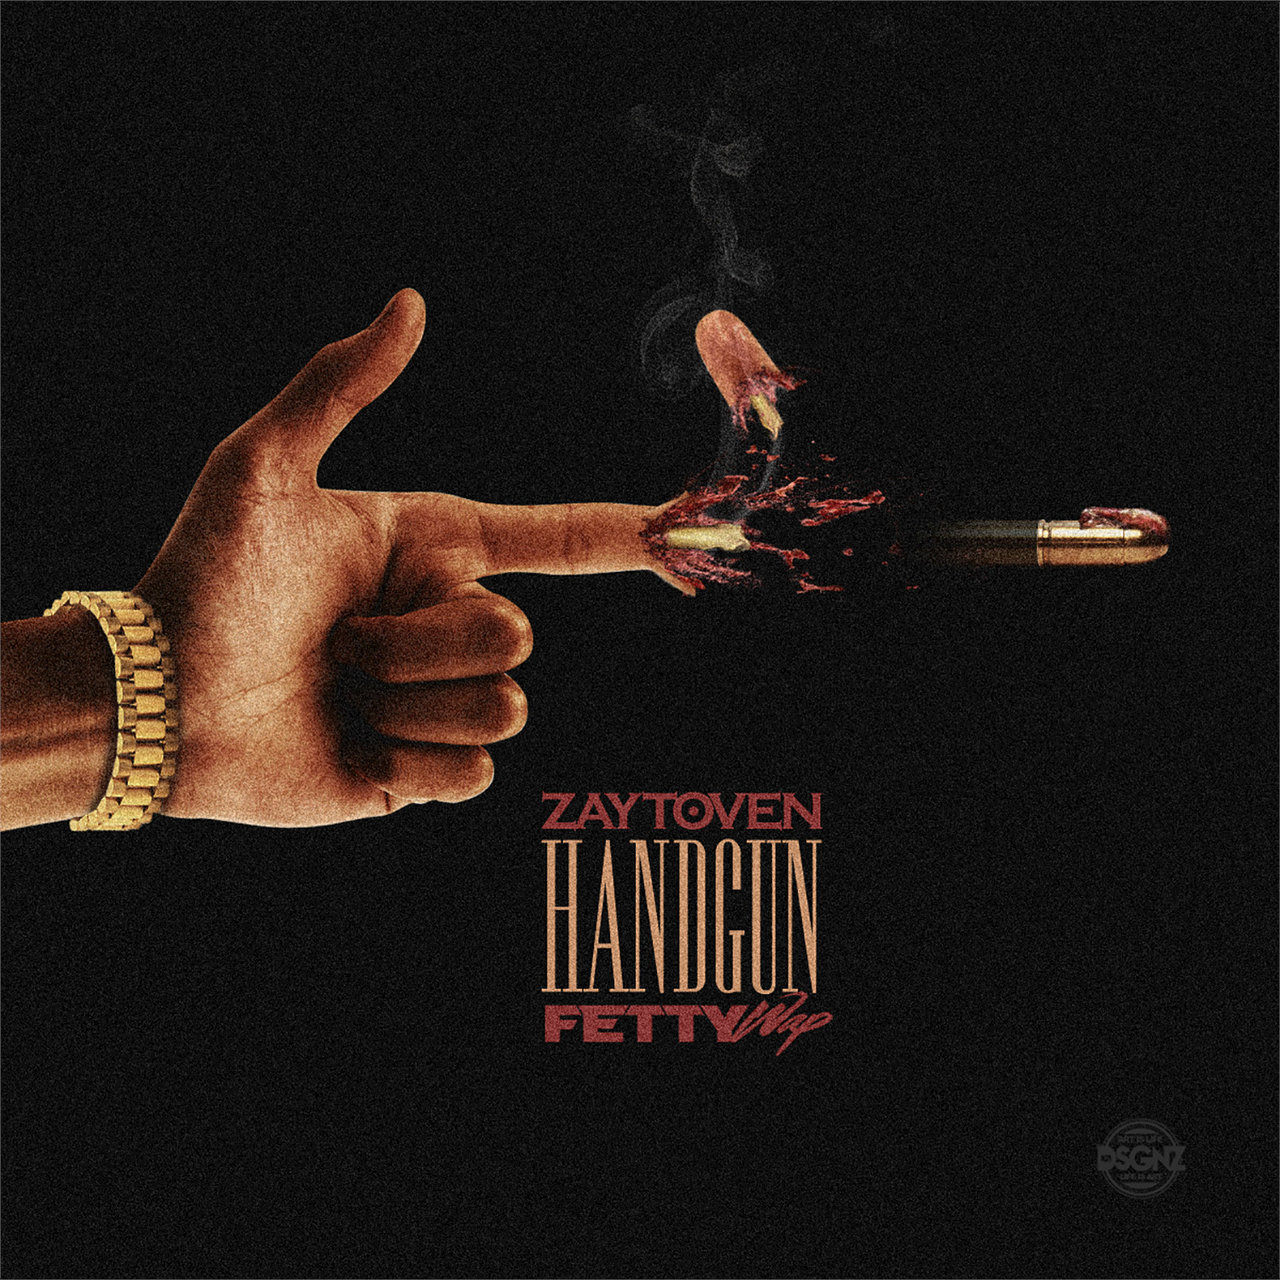 Handgun (feat. Fetty Wap)